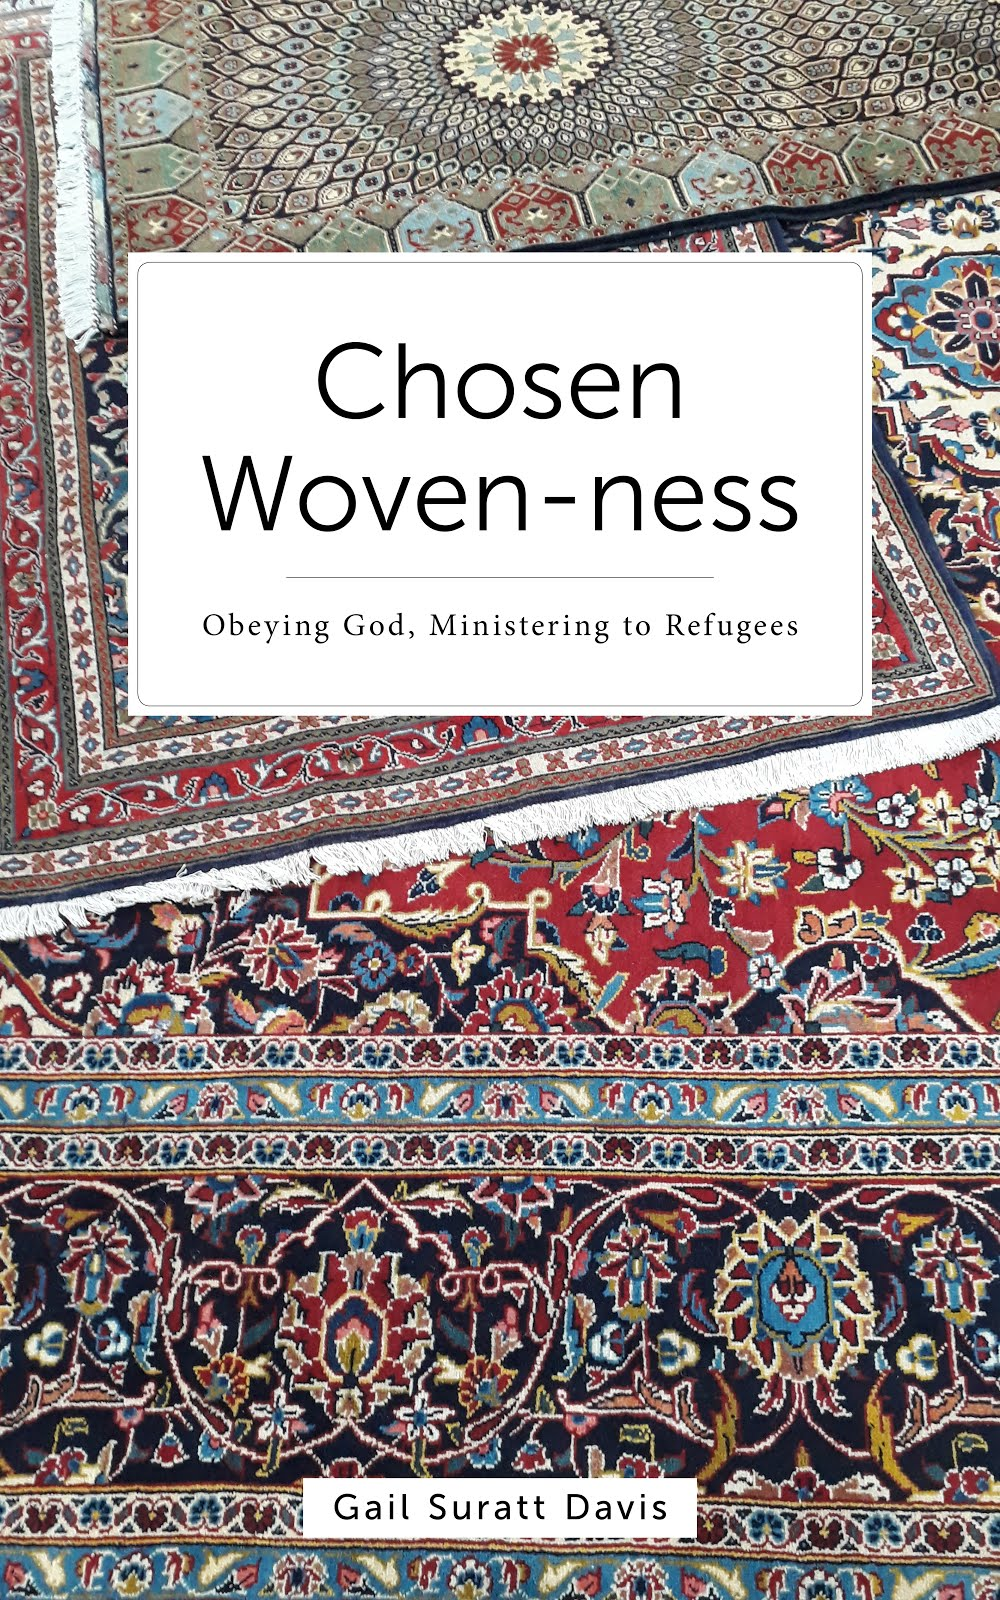 Chosen Woven-ness: Obeying God, Ministering to Refugees